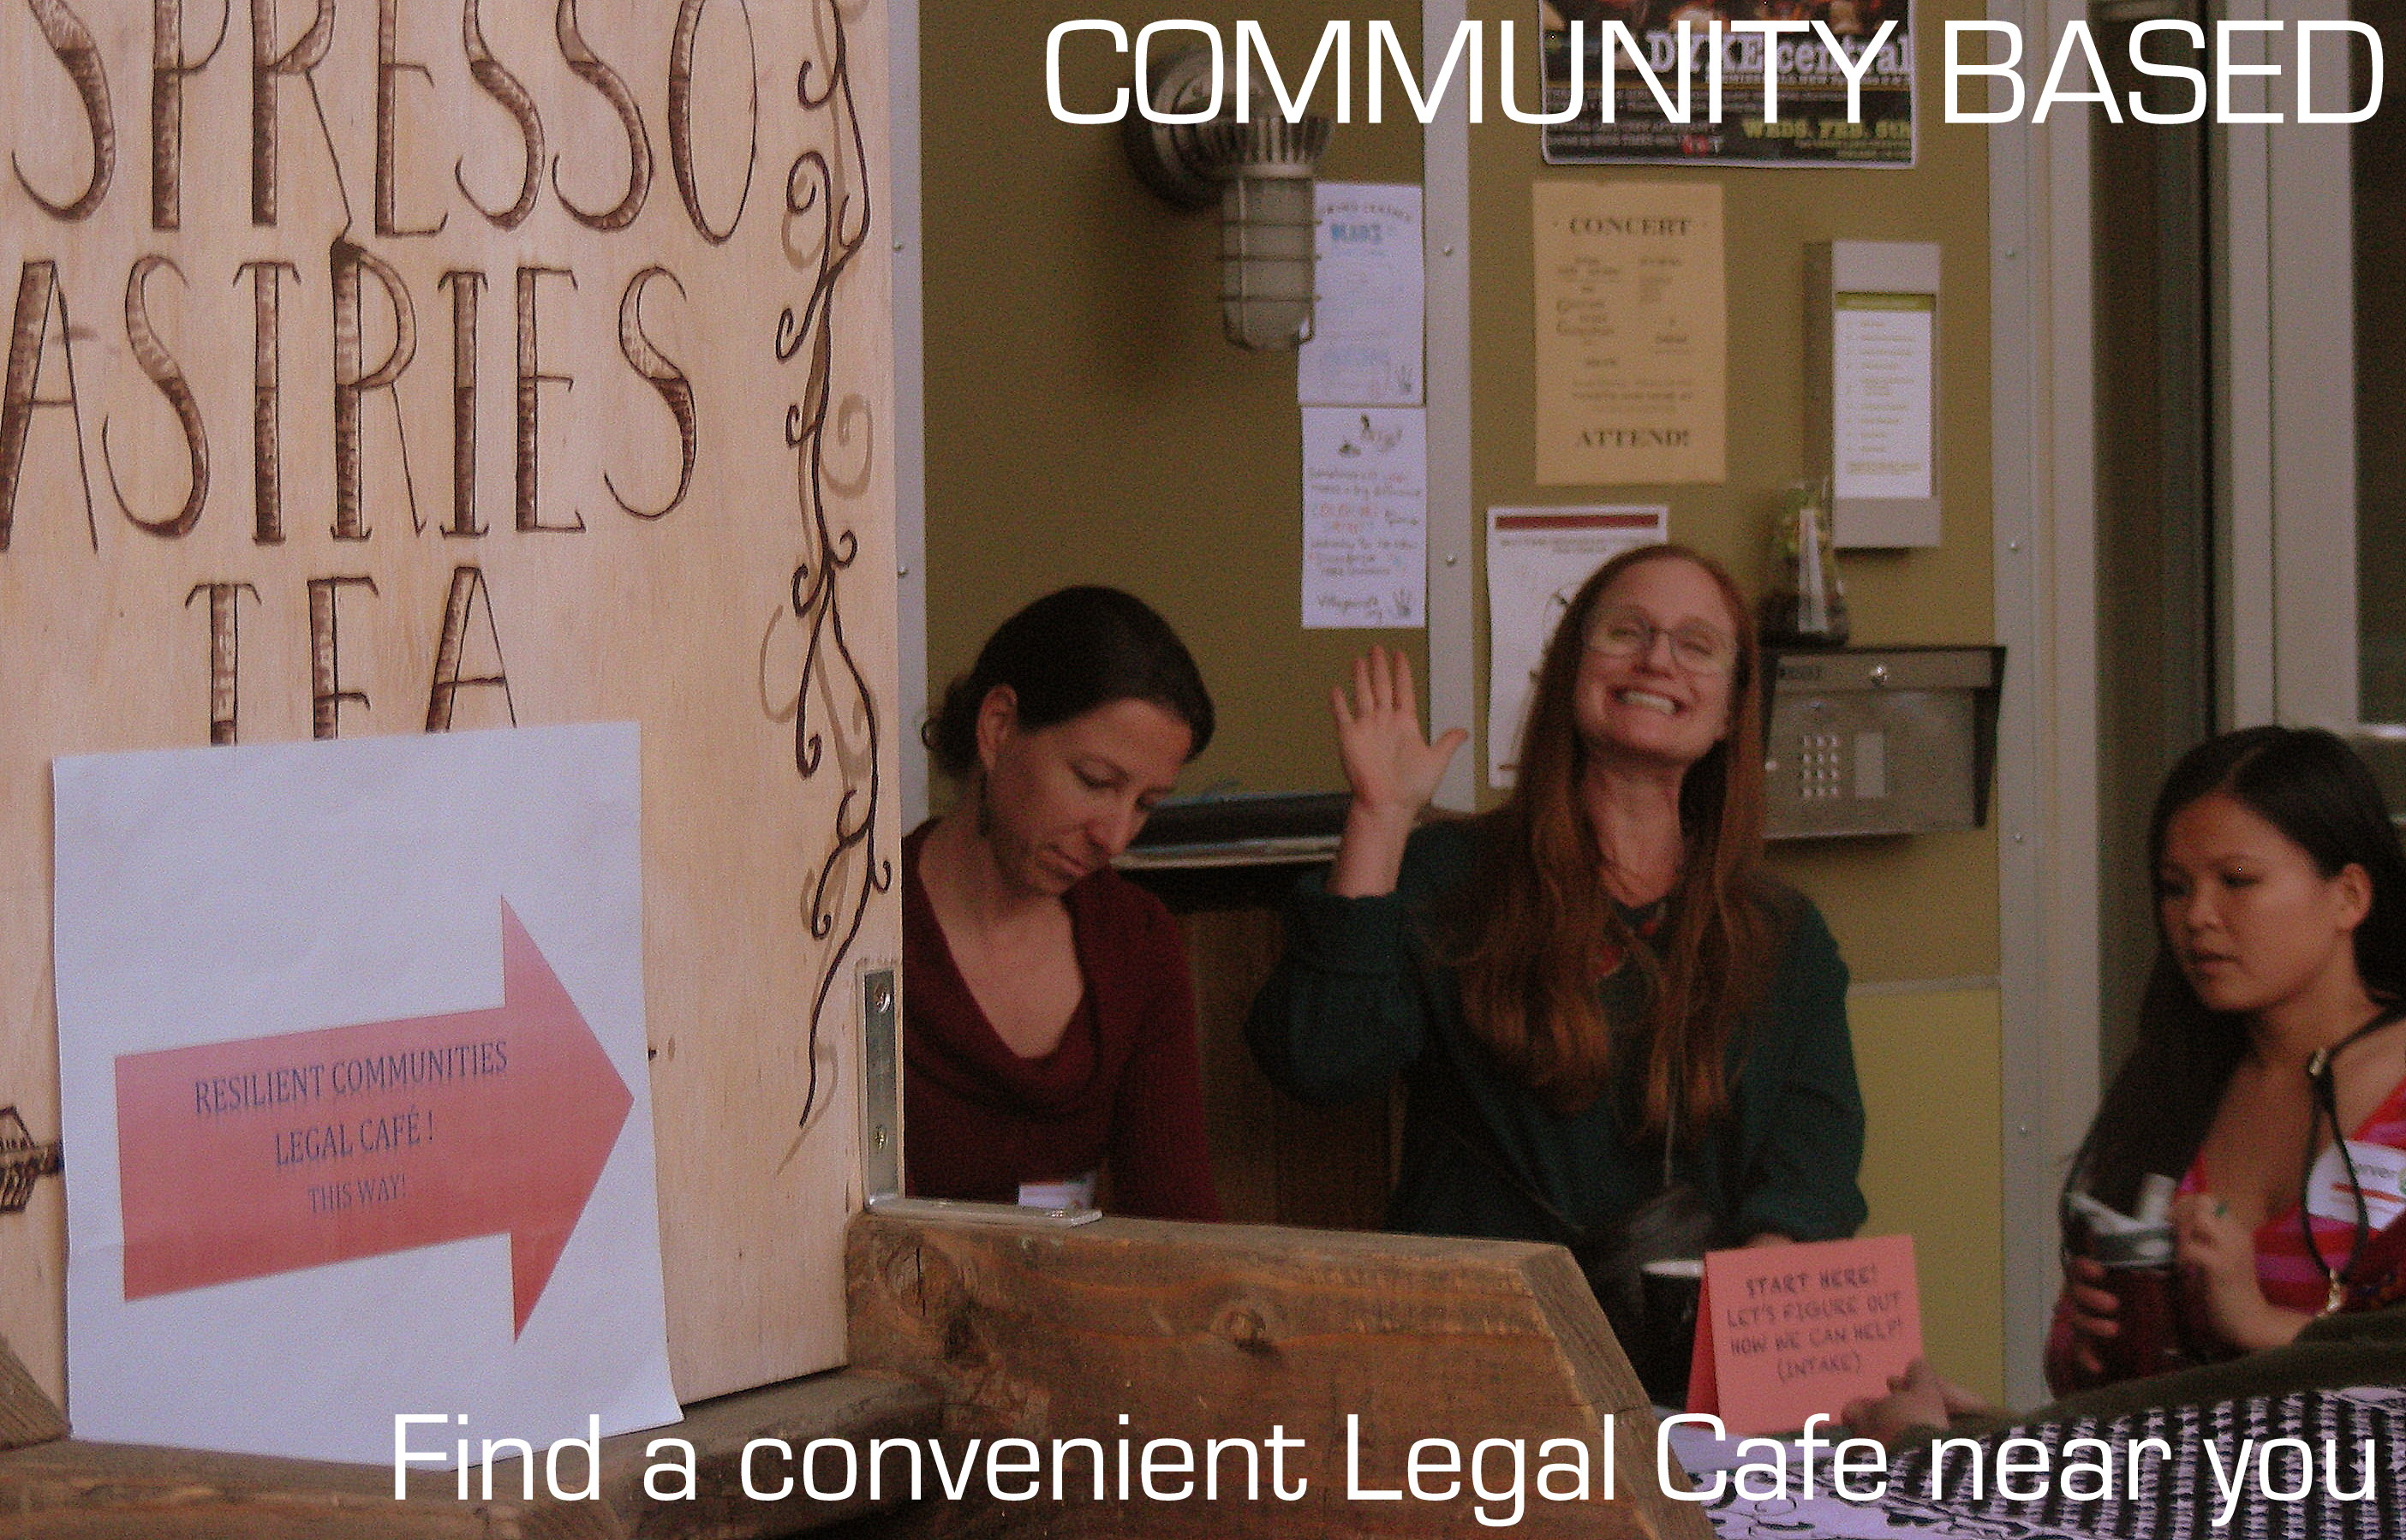 Community_Based_Legal_Cafe.JPG